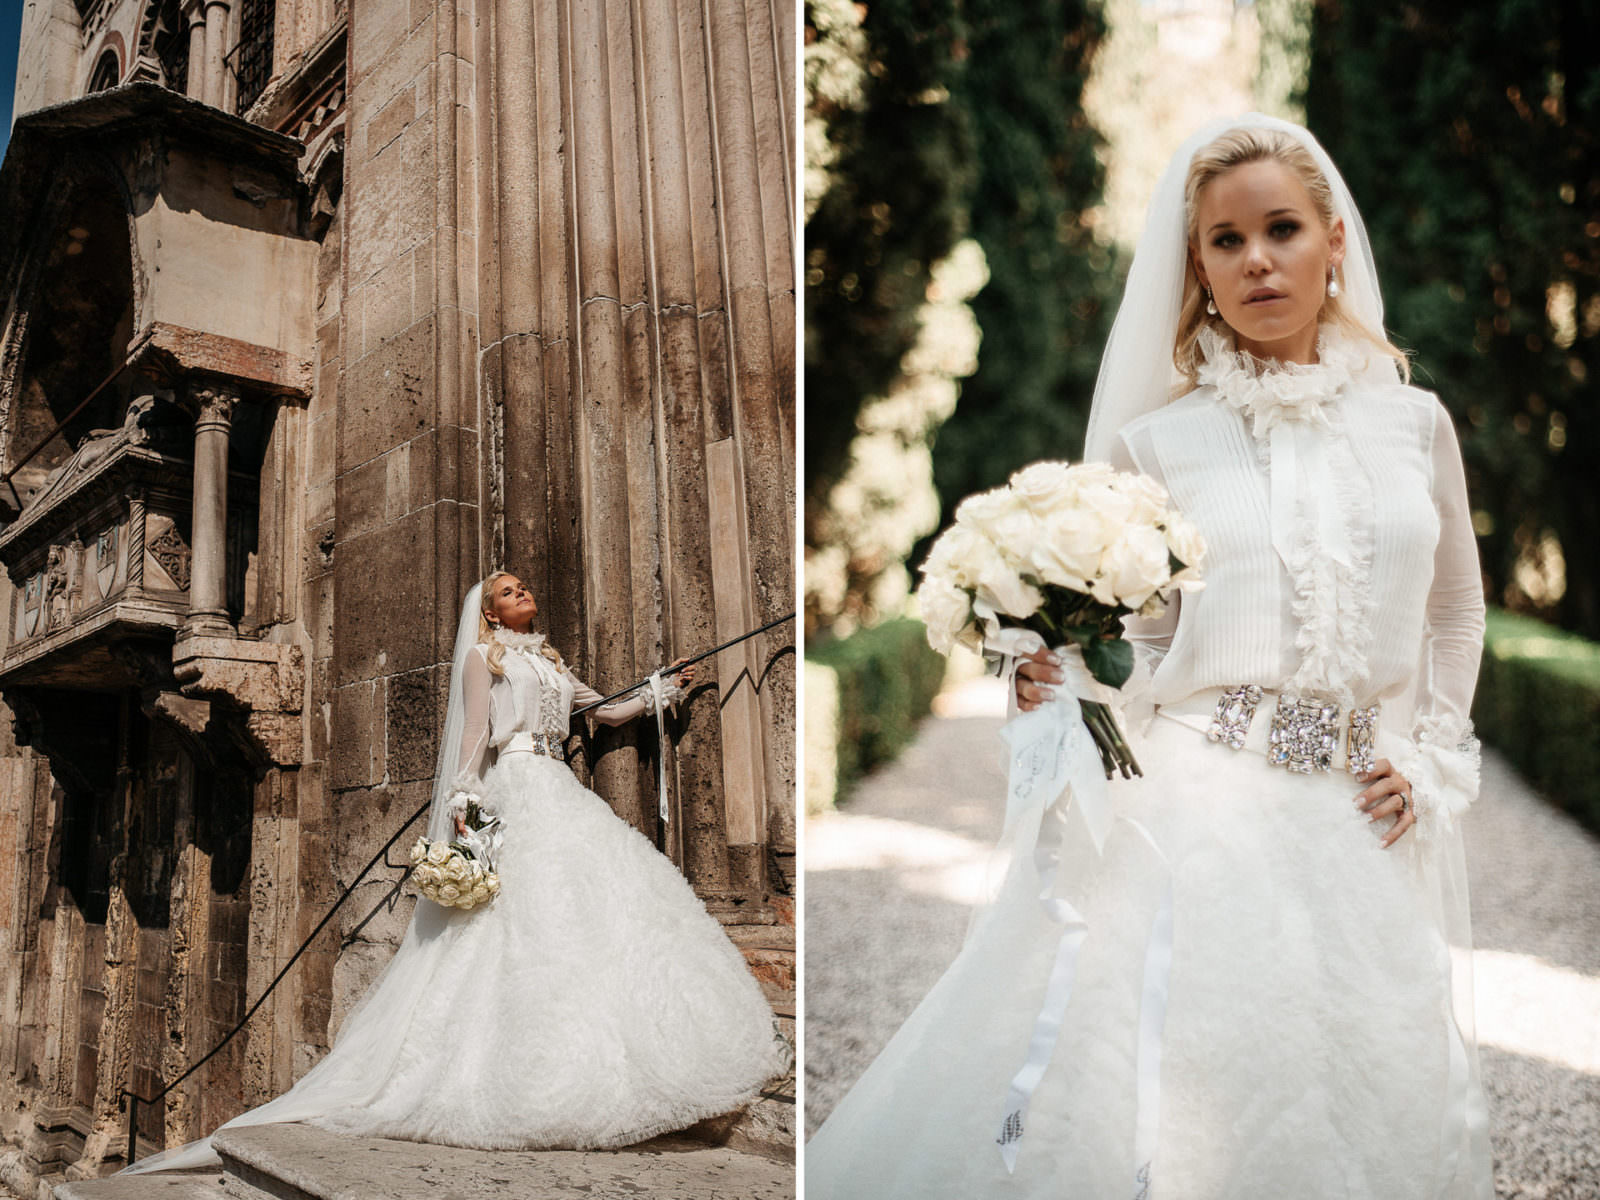 julia_manuel_057_italy_wedding